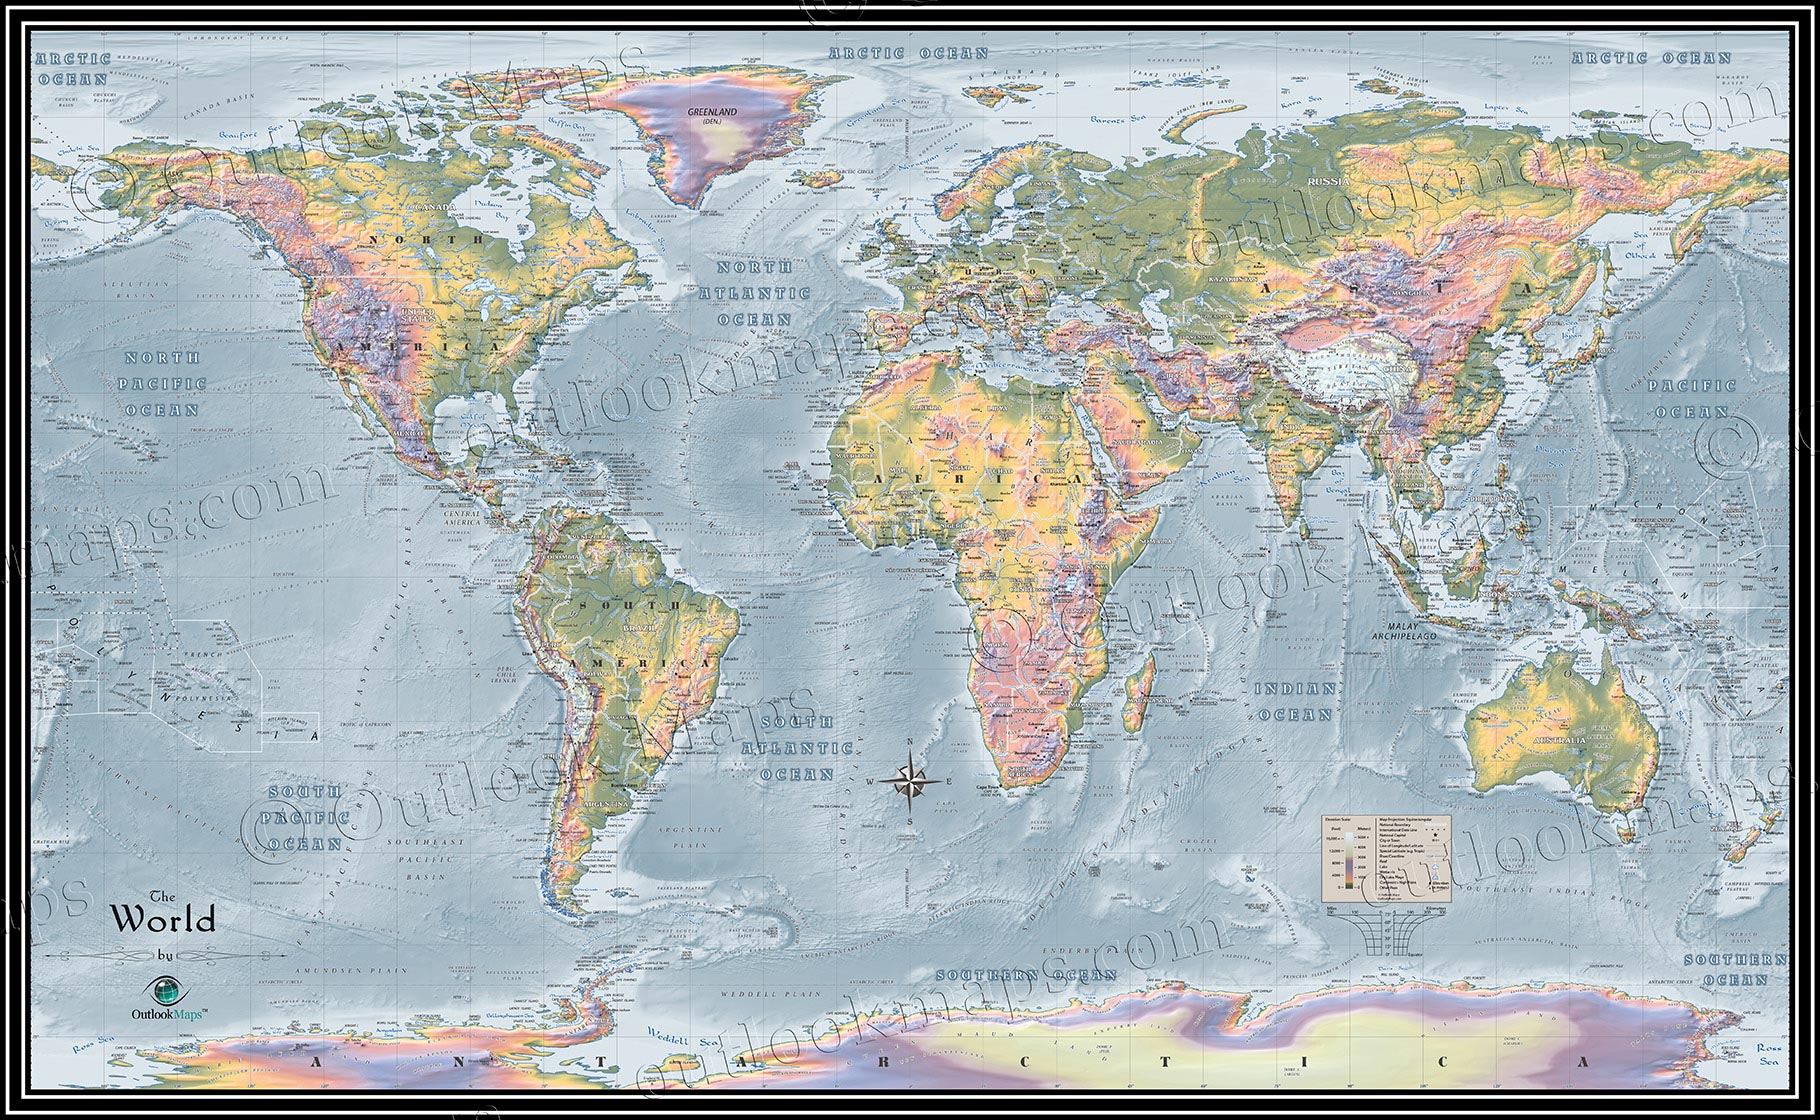 World topographical map topographic map of world elevation world600 world topographic map gumiabroncs Images